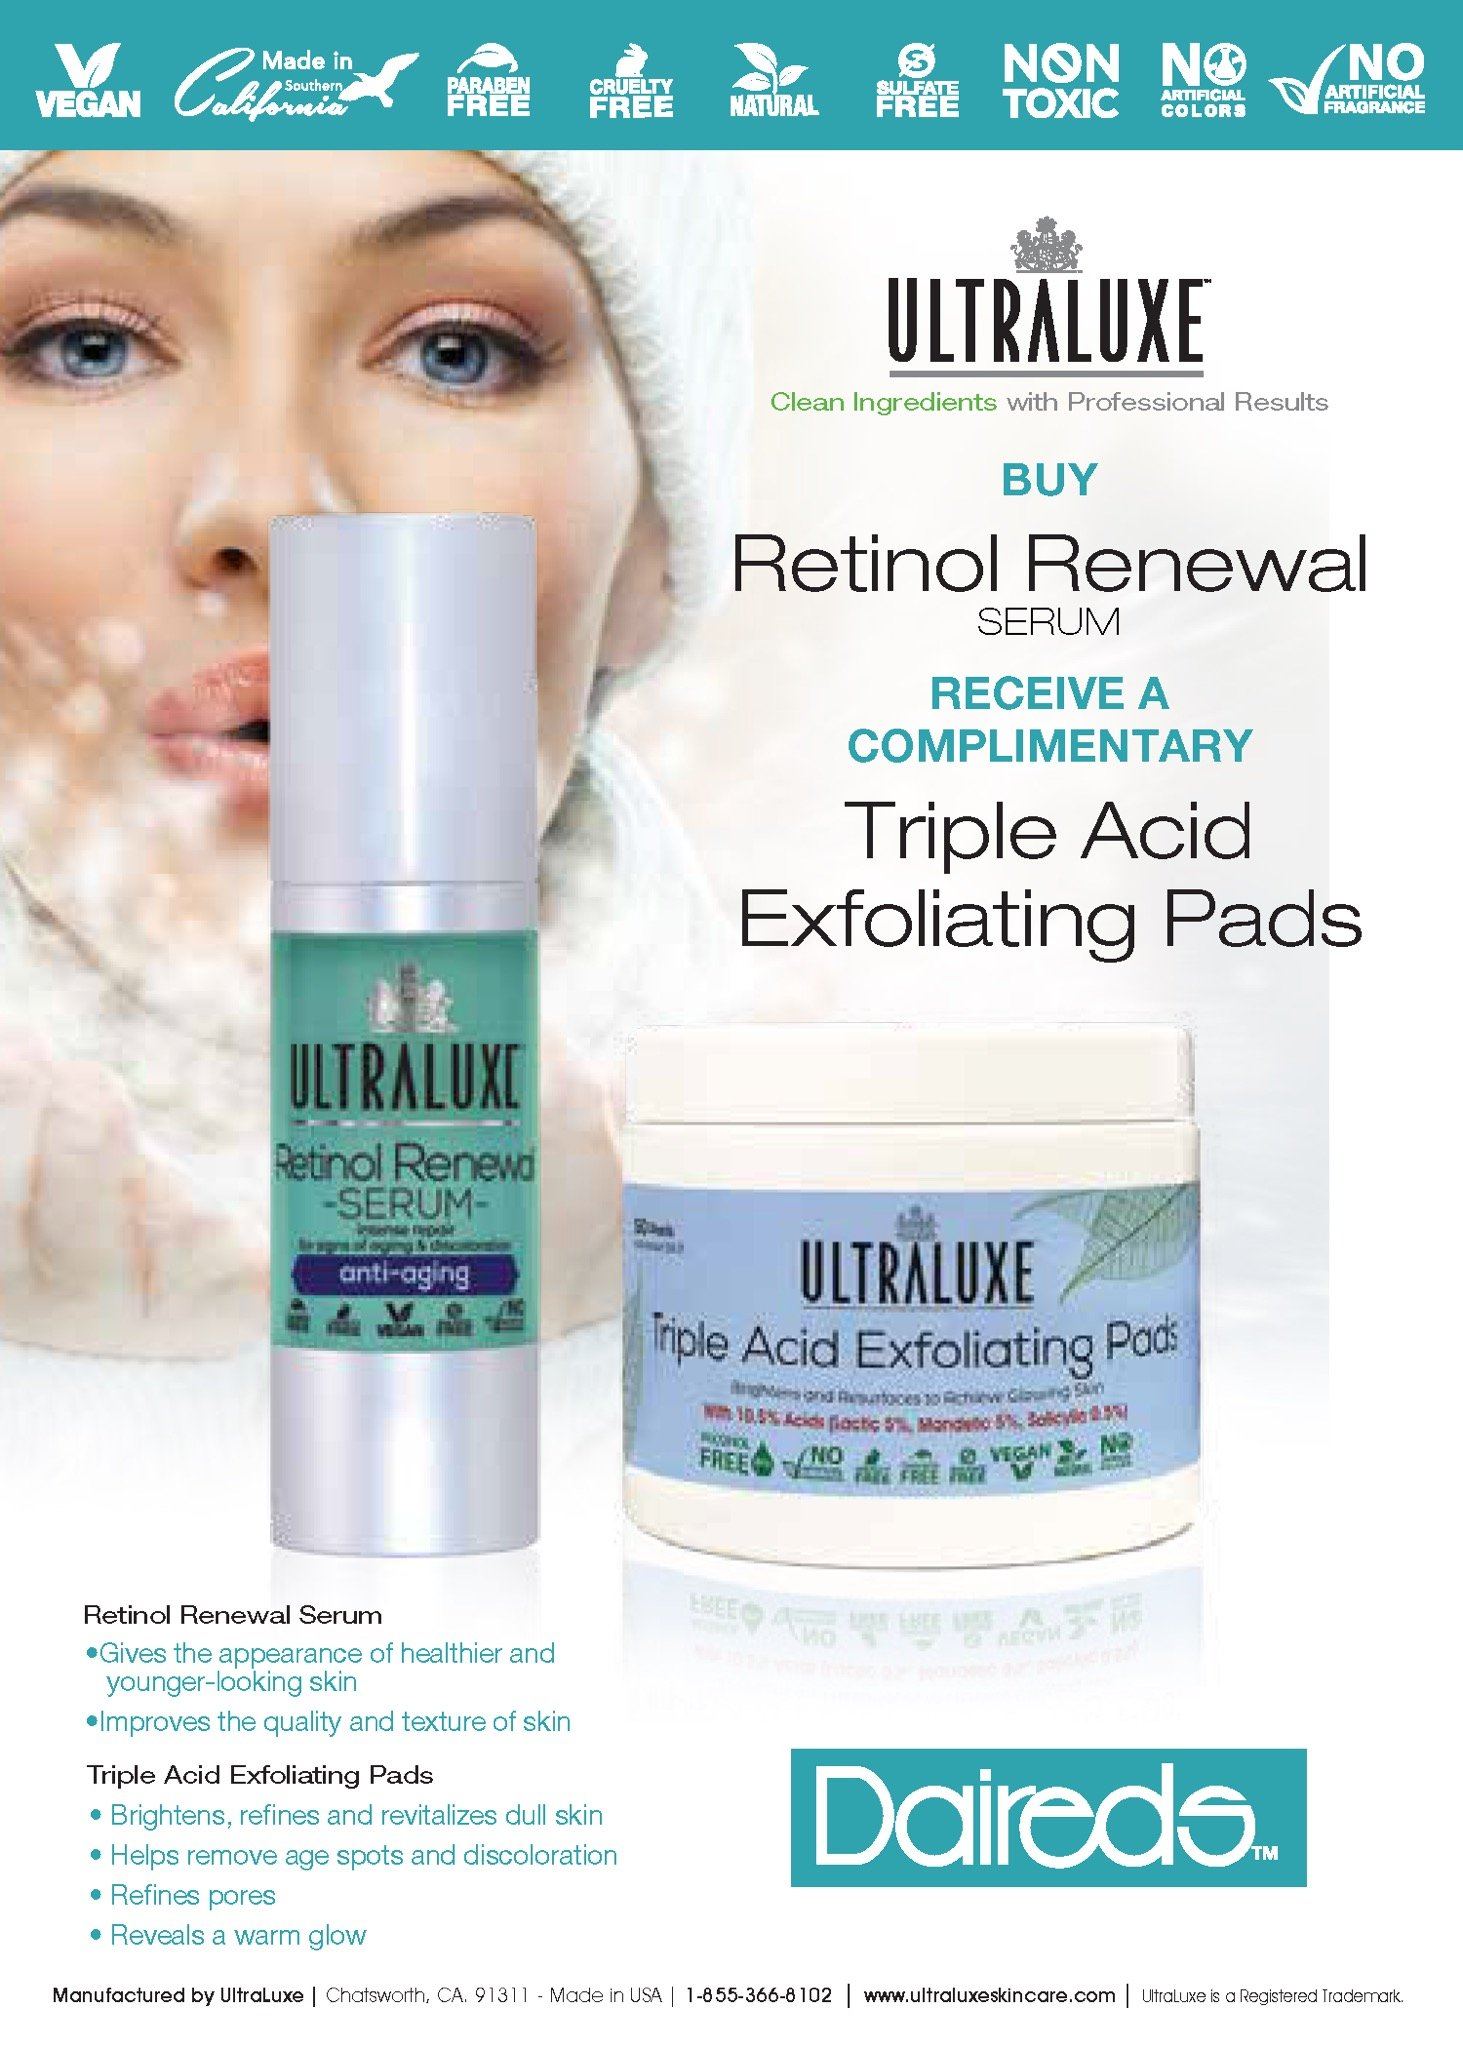 Ultraluxe special for the entire month of January. Buy a Retinal Renewal Serum and receive a complimentary Triple Acid Exfoliating Pads product.